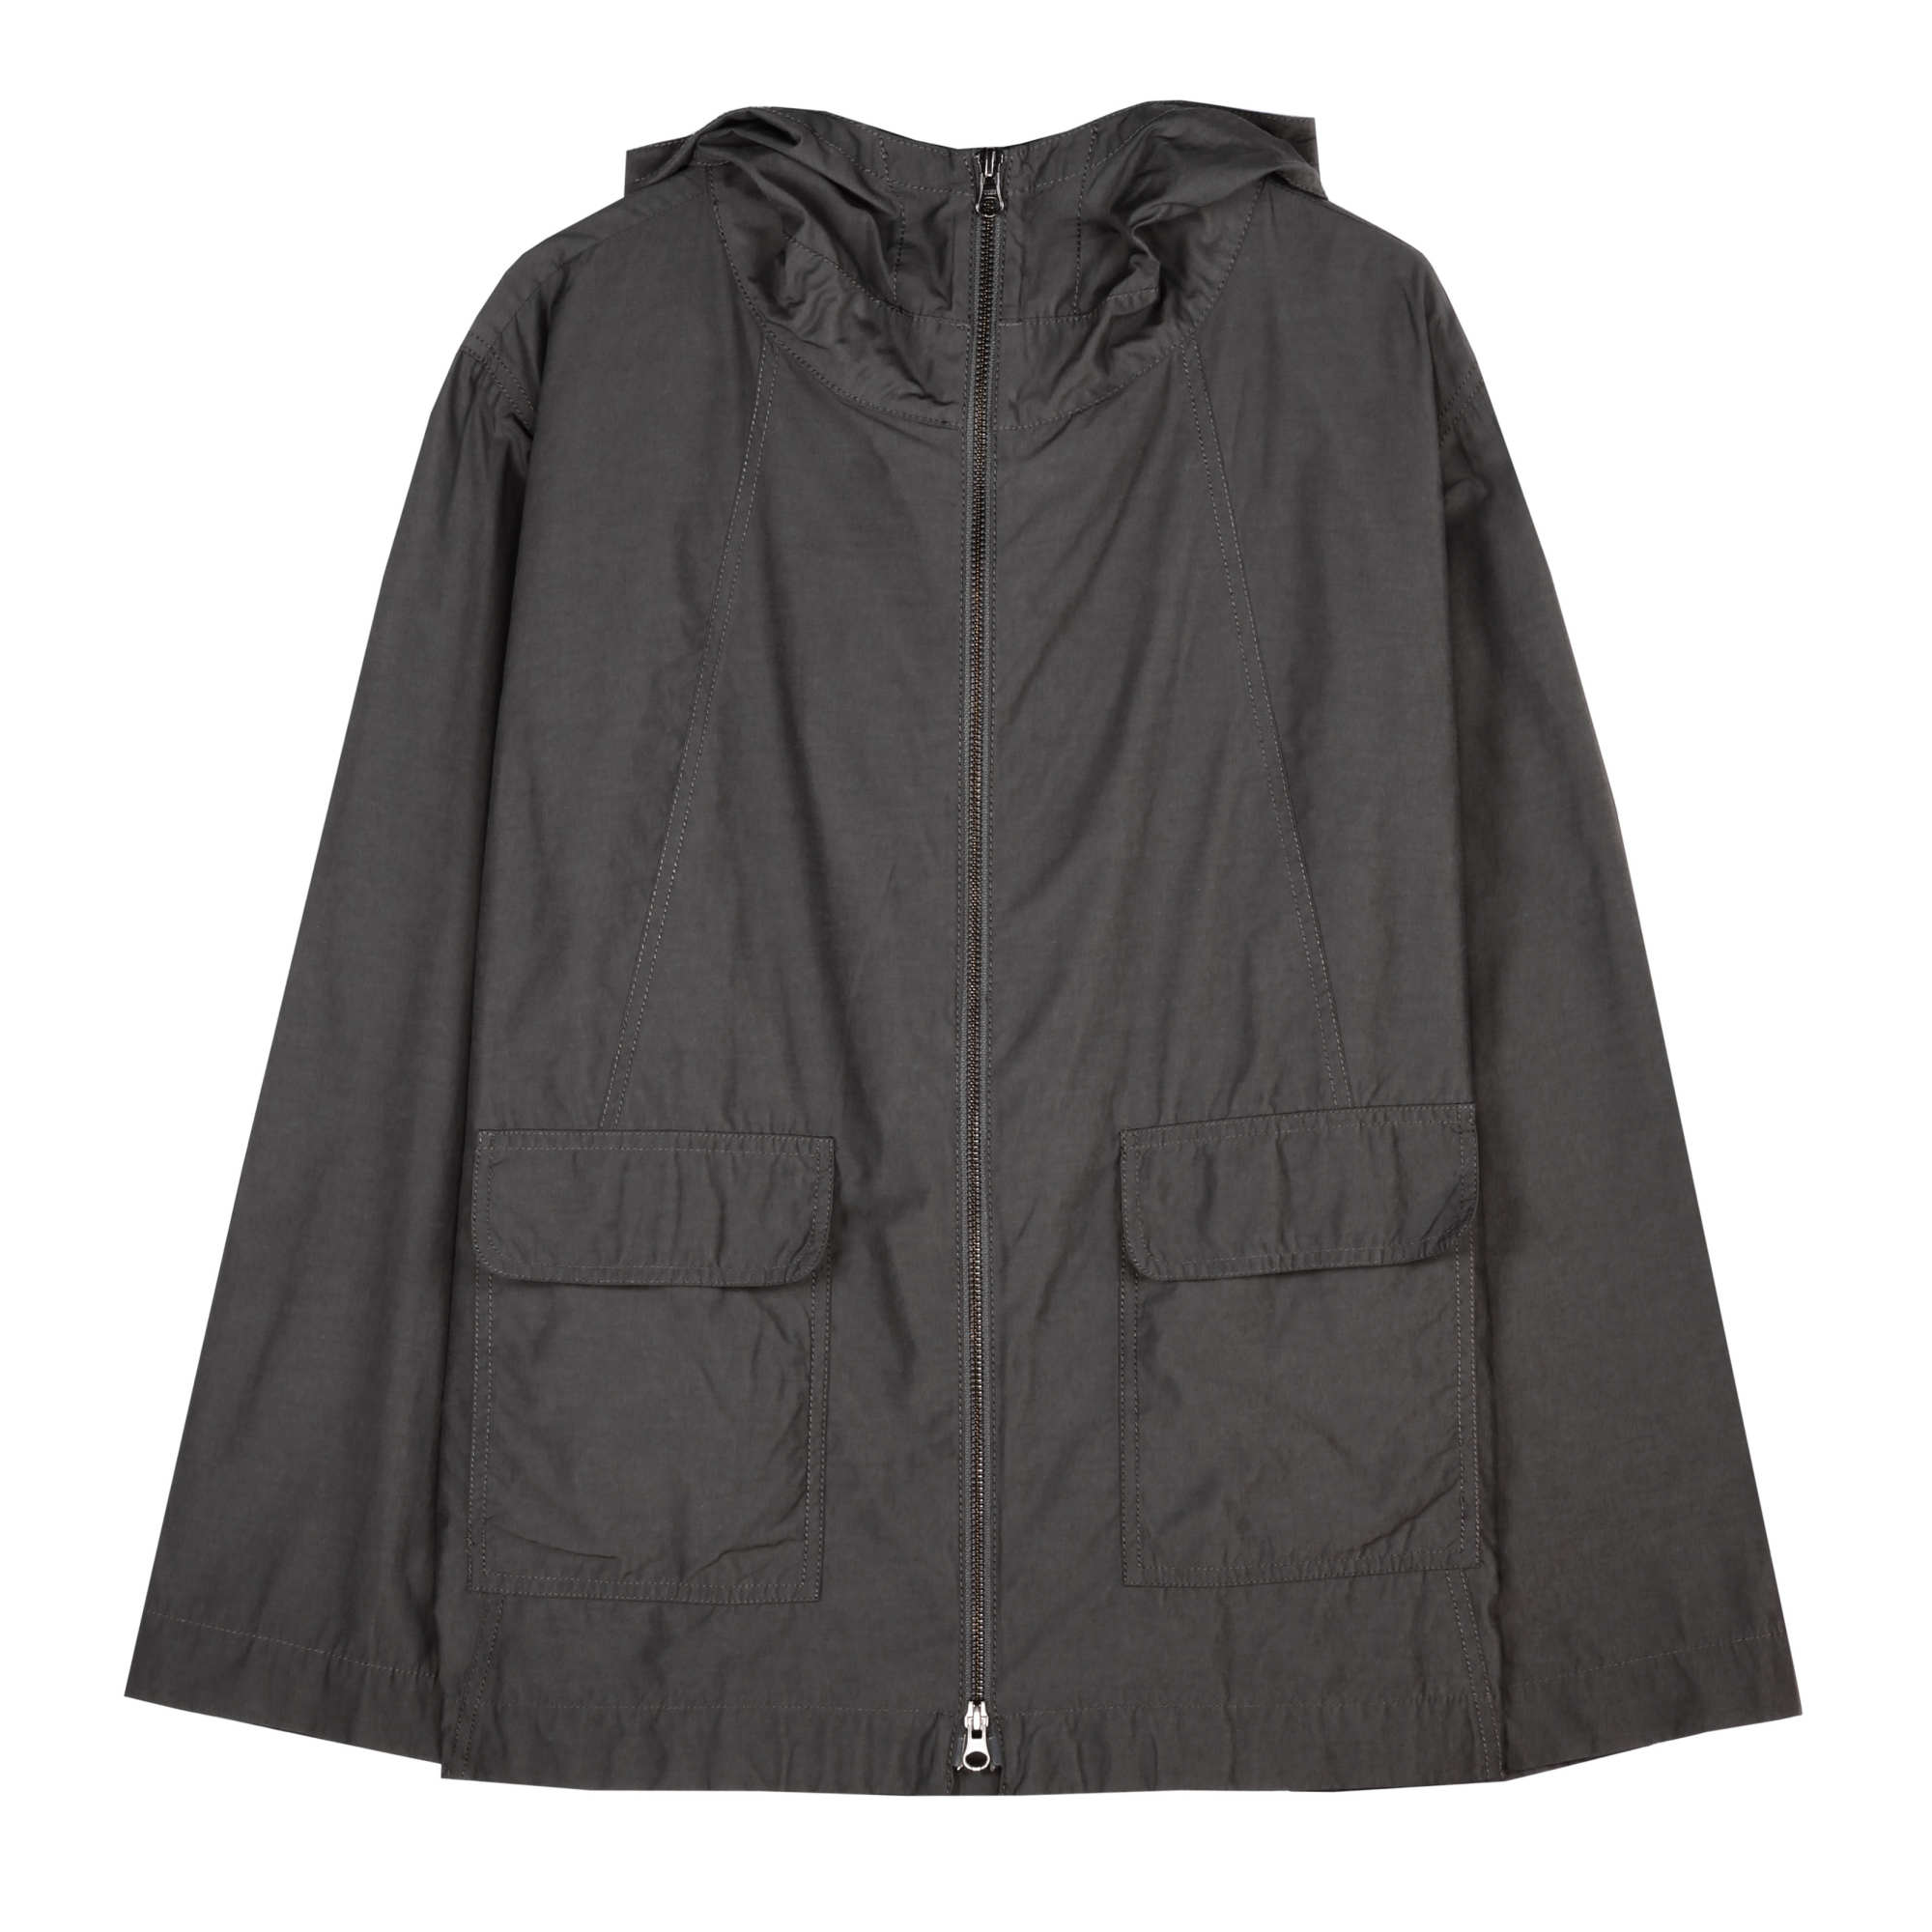 Weather Resistant Cotton Nylon Jacket